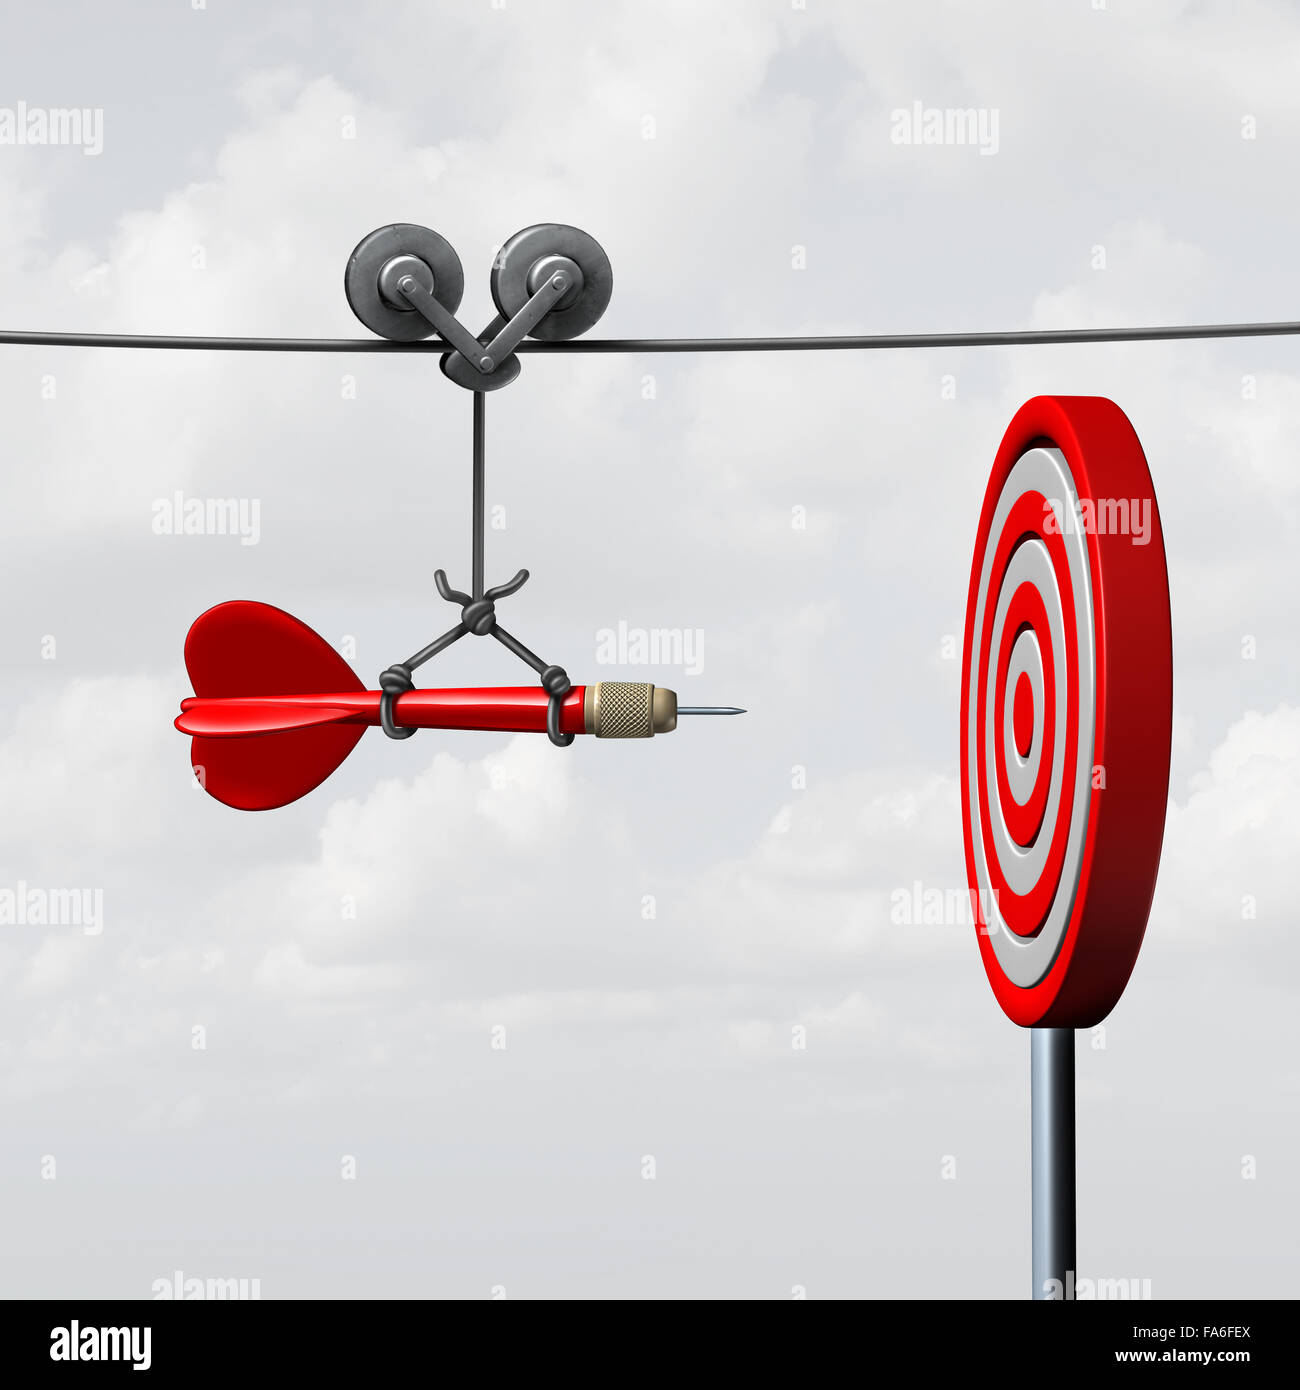 Success hitting target as a business assistance concept with the help of a guide as a symbol for goal achievement - Stock Image